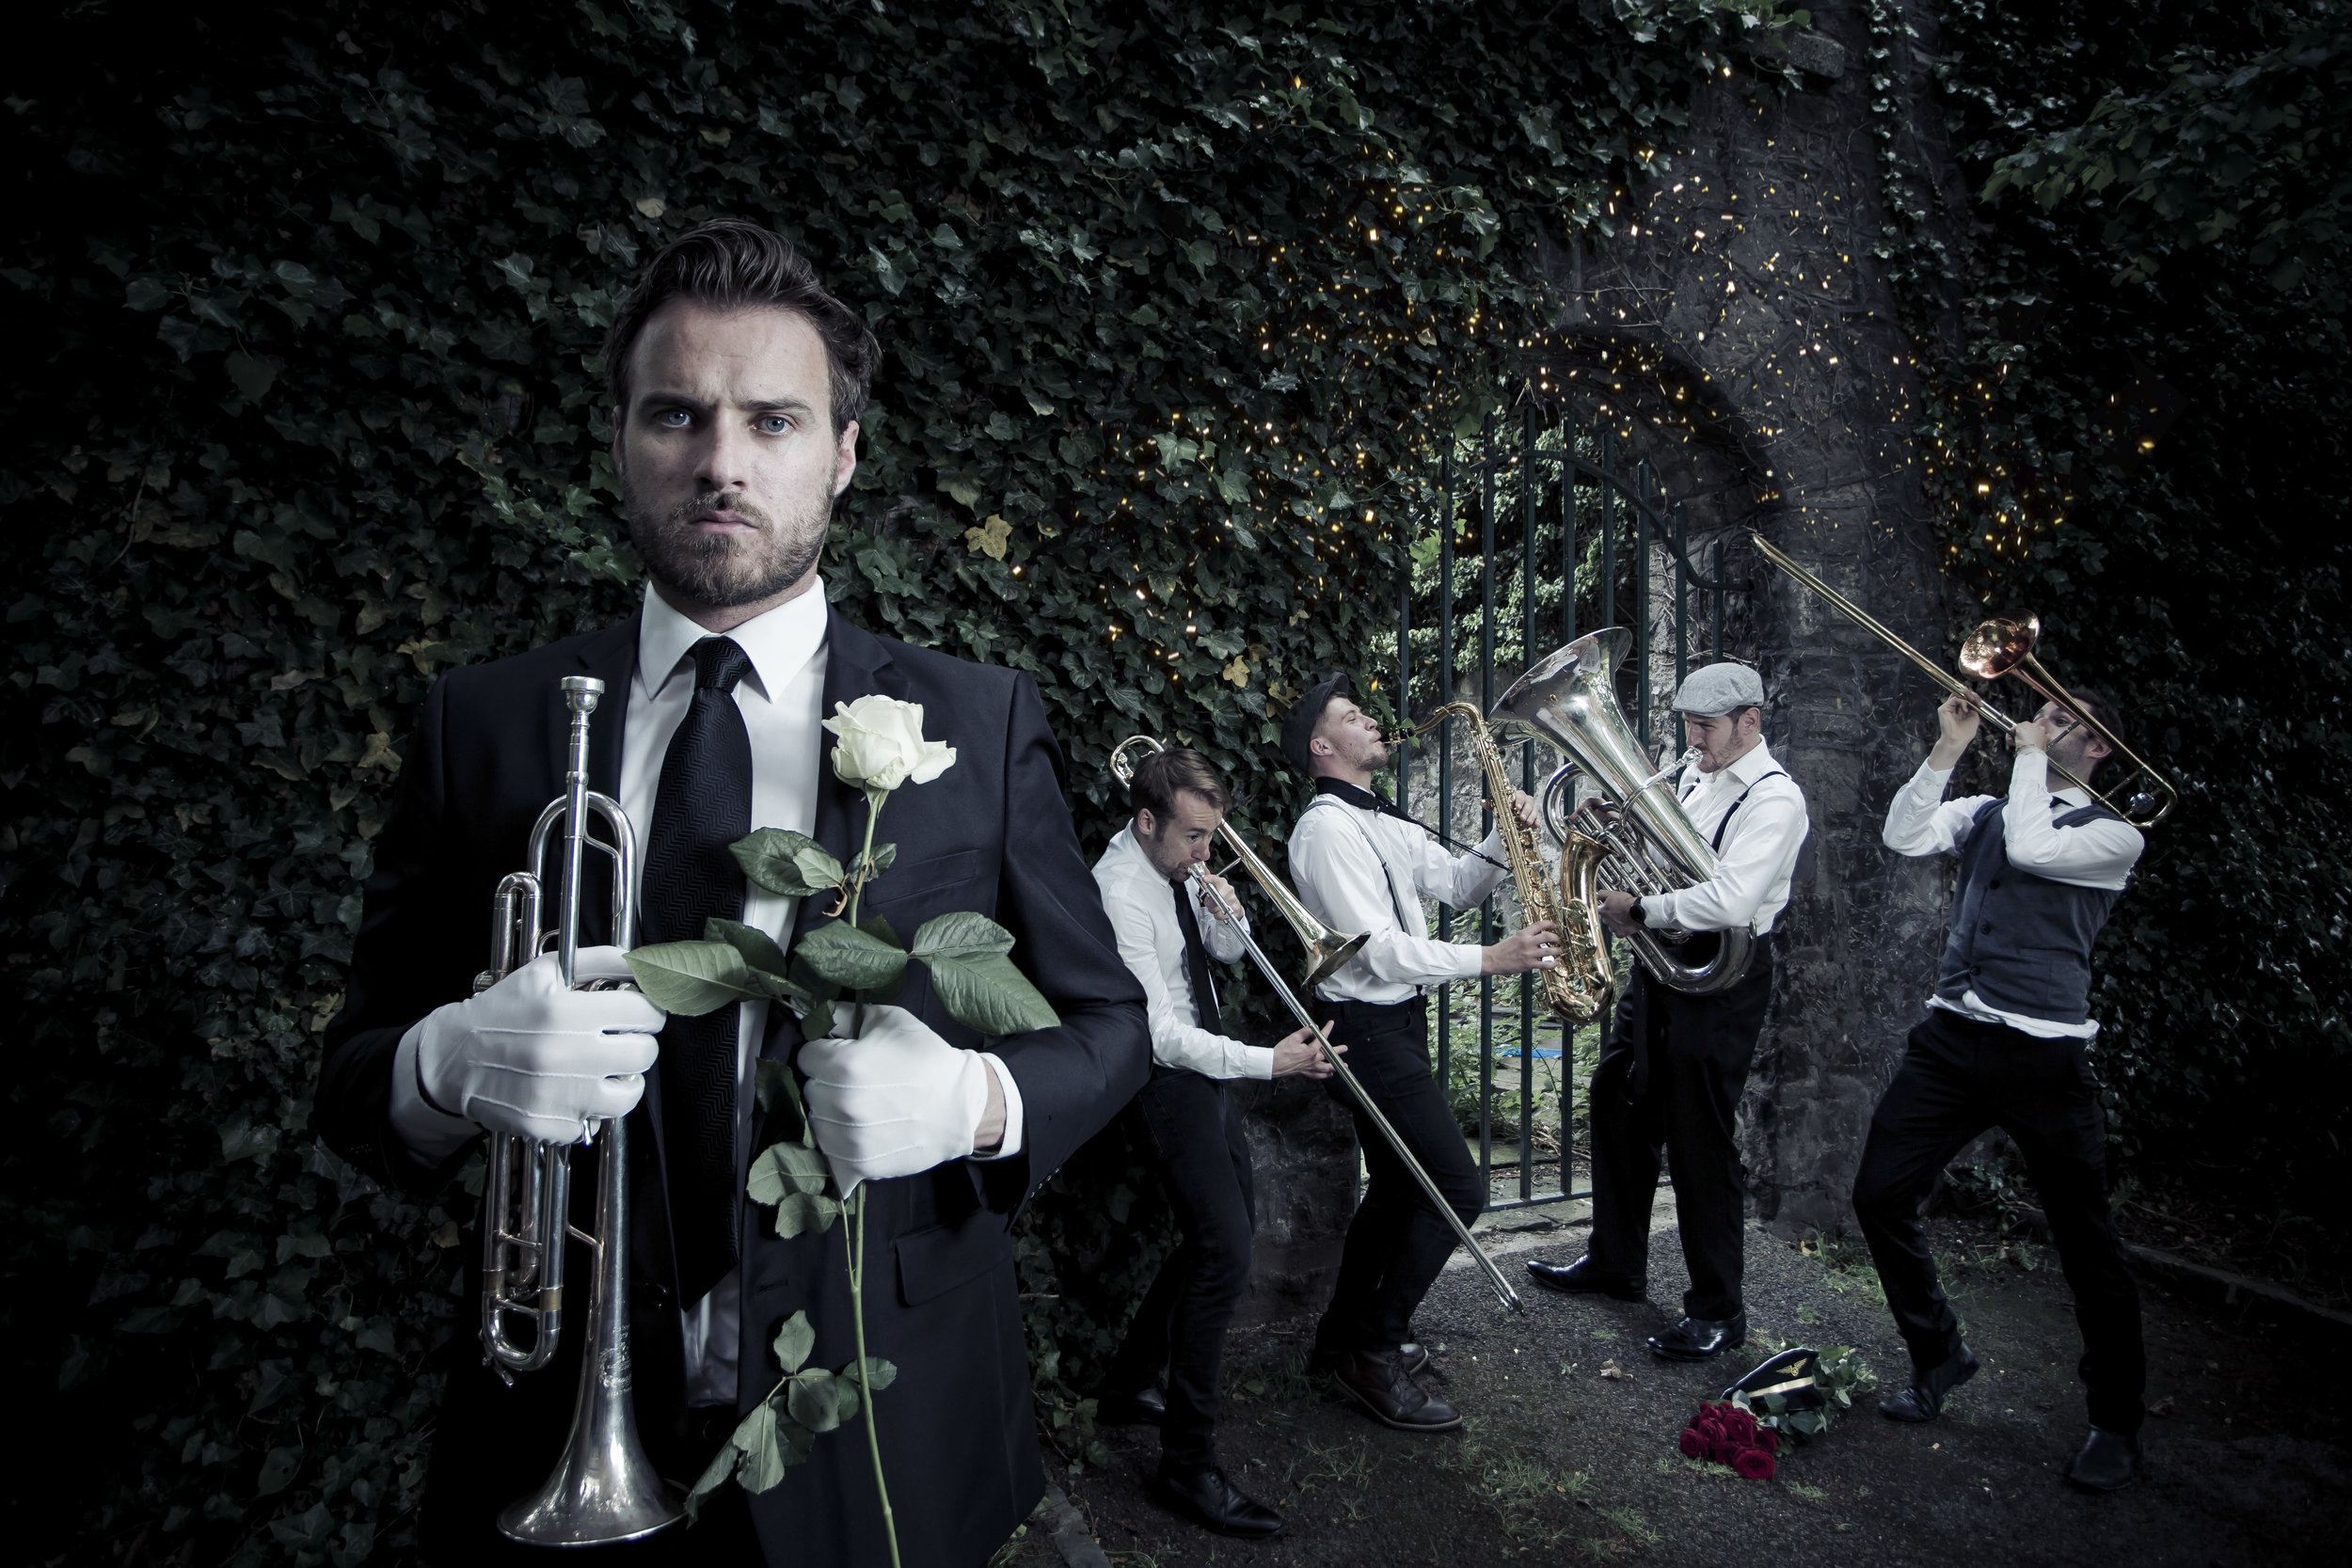 Stomptown Brass and Collapsing Horse present Requiem for the Truth as part of Dublin Fringe Festival in St. Werburgh's Church on 21st, 22nd, 23rd and 24th of Sept. Limited tickets still available here: http://fringefest.com/festival/whats-on/requiem-for-the-truth.  This article was originally published in The Irish Times: https://www.irishtimes.com/opinion/robert-grant-the-truth-deserves-a-decent-funeral-1.3225327